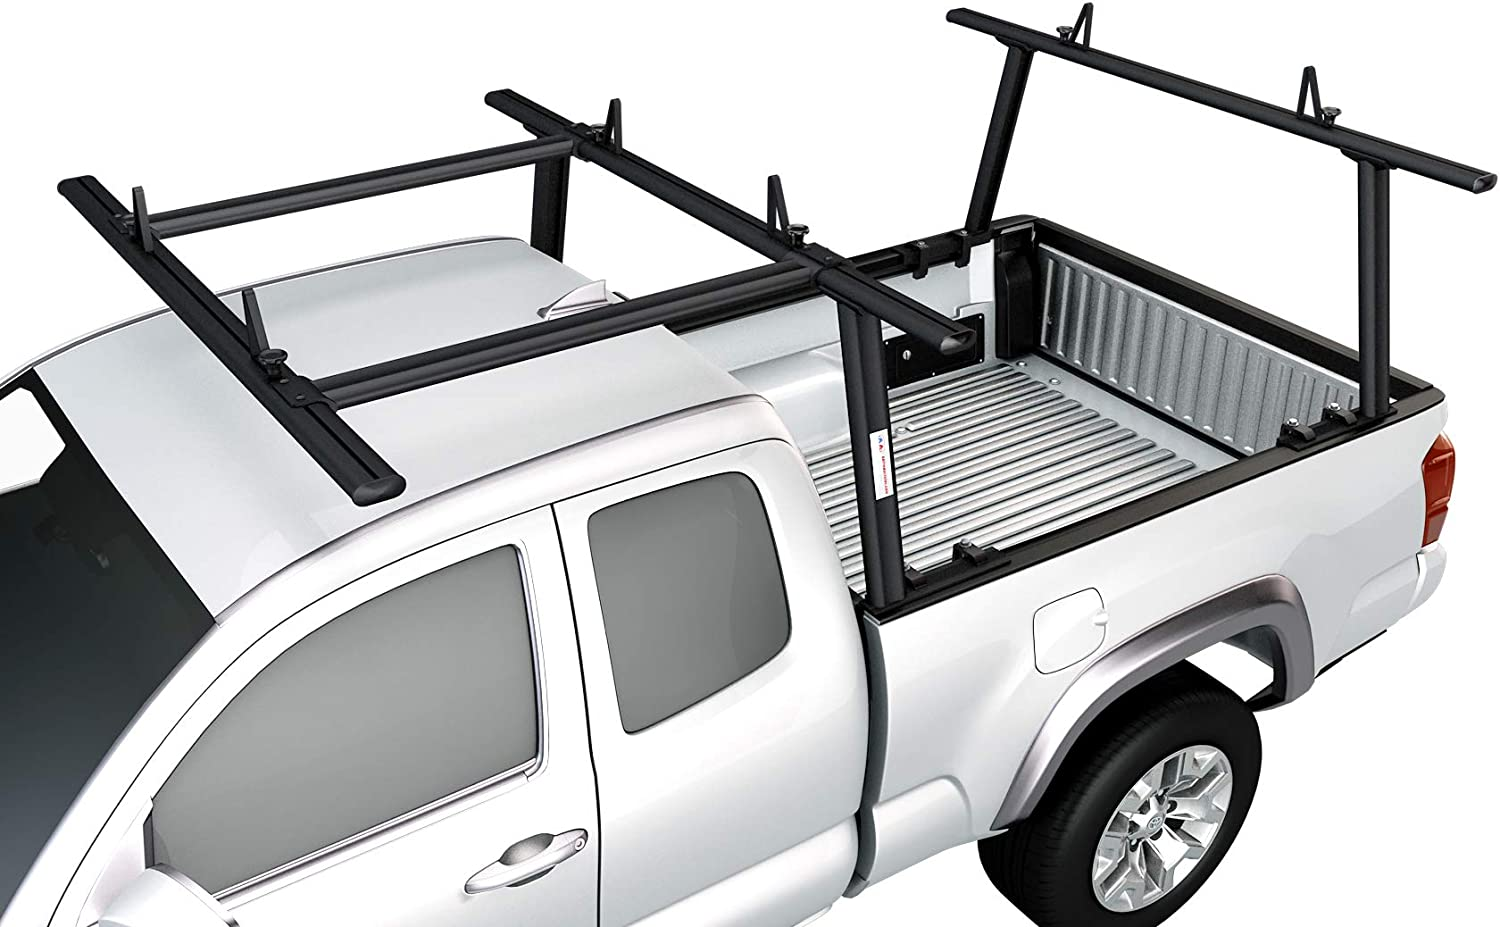 AA-Racks 35 Ladder Roller Truck Rack Accessory T-Slot Mounted Load Assist Roller for Model APX25